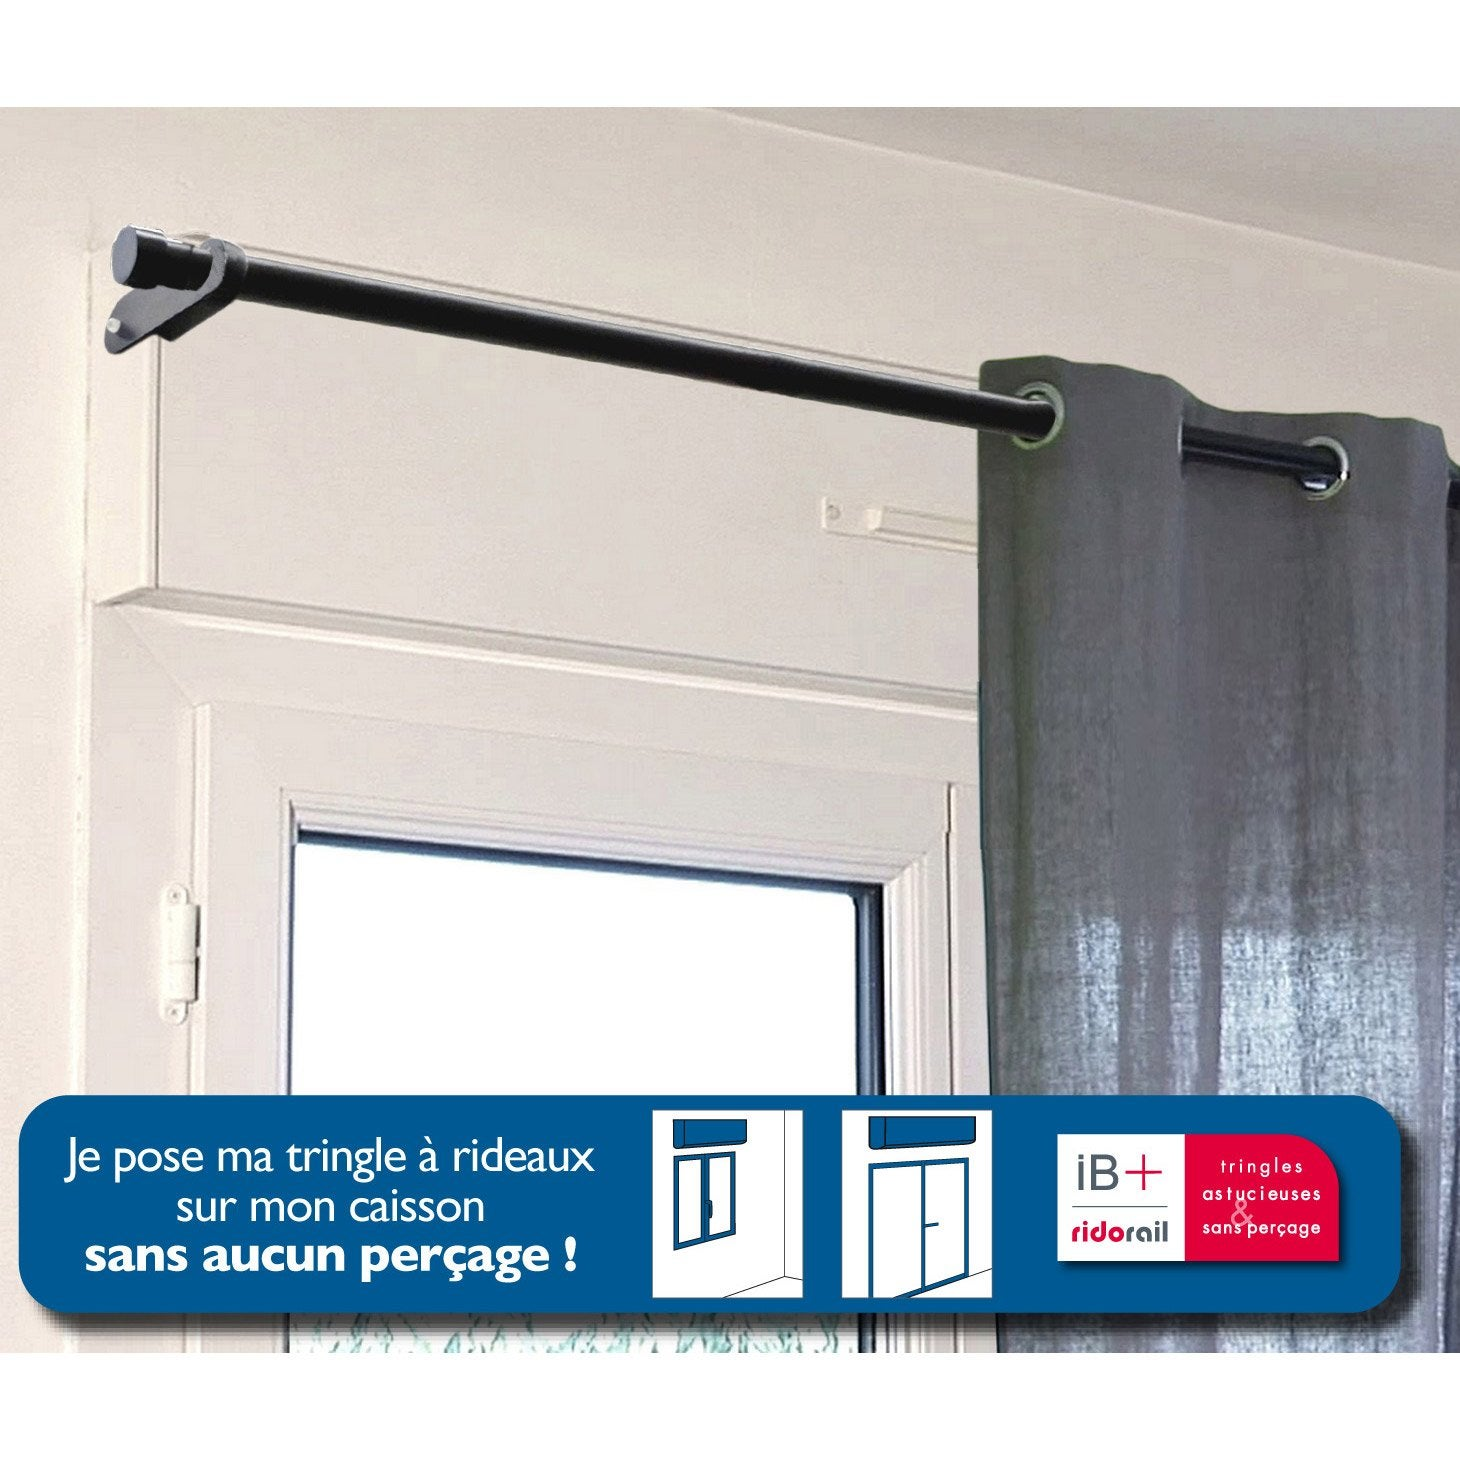 Support sans per age tringle rideau ib 25 mm noir mat for Tringle a rideau pour baie vitree